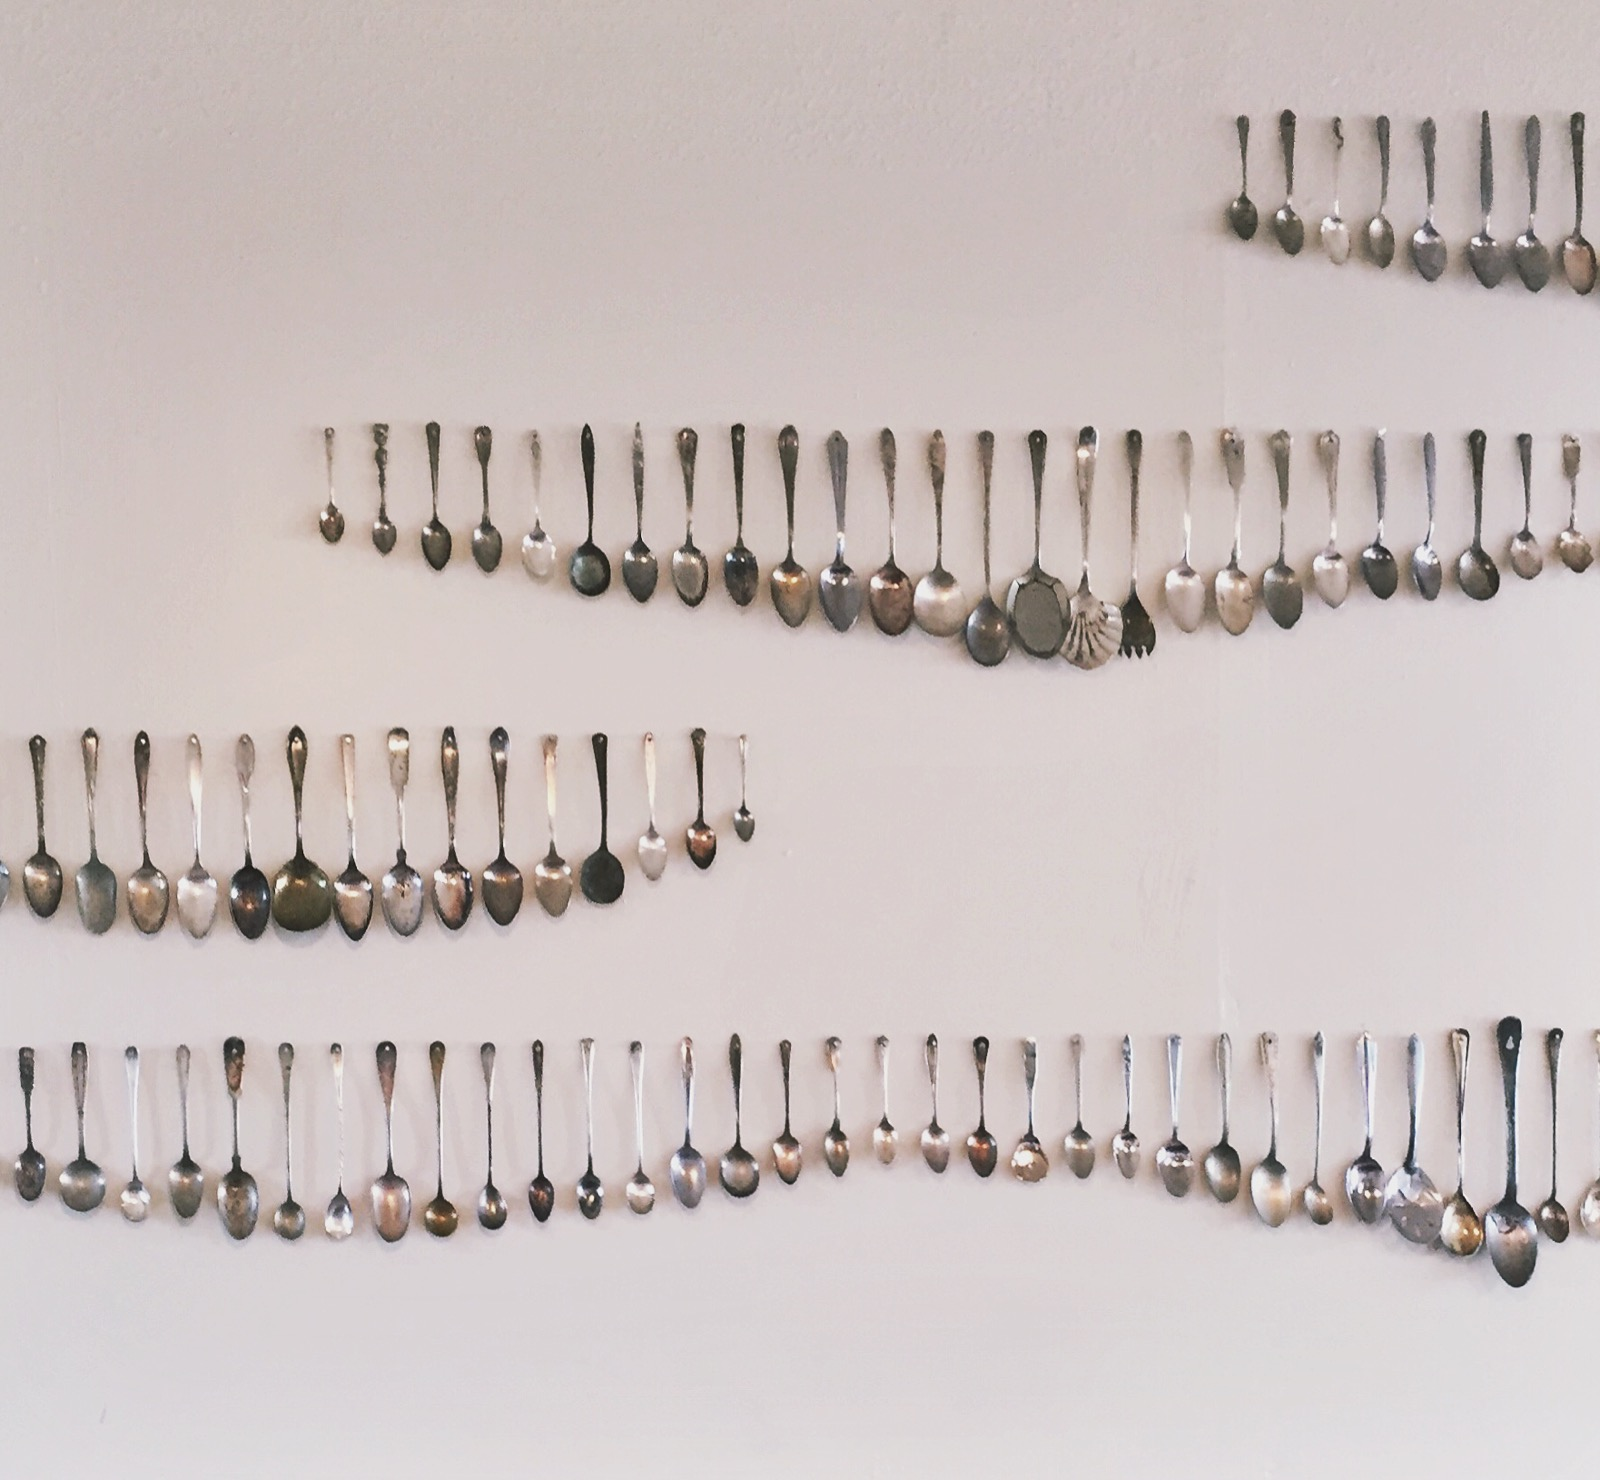 Spoons of all shapes and sizes arranged in lines on the walls of a nashville restaurant